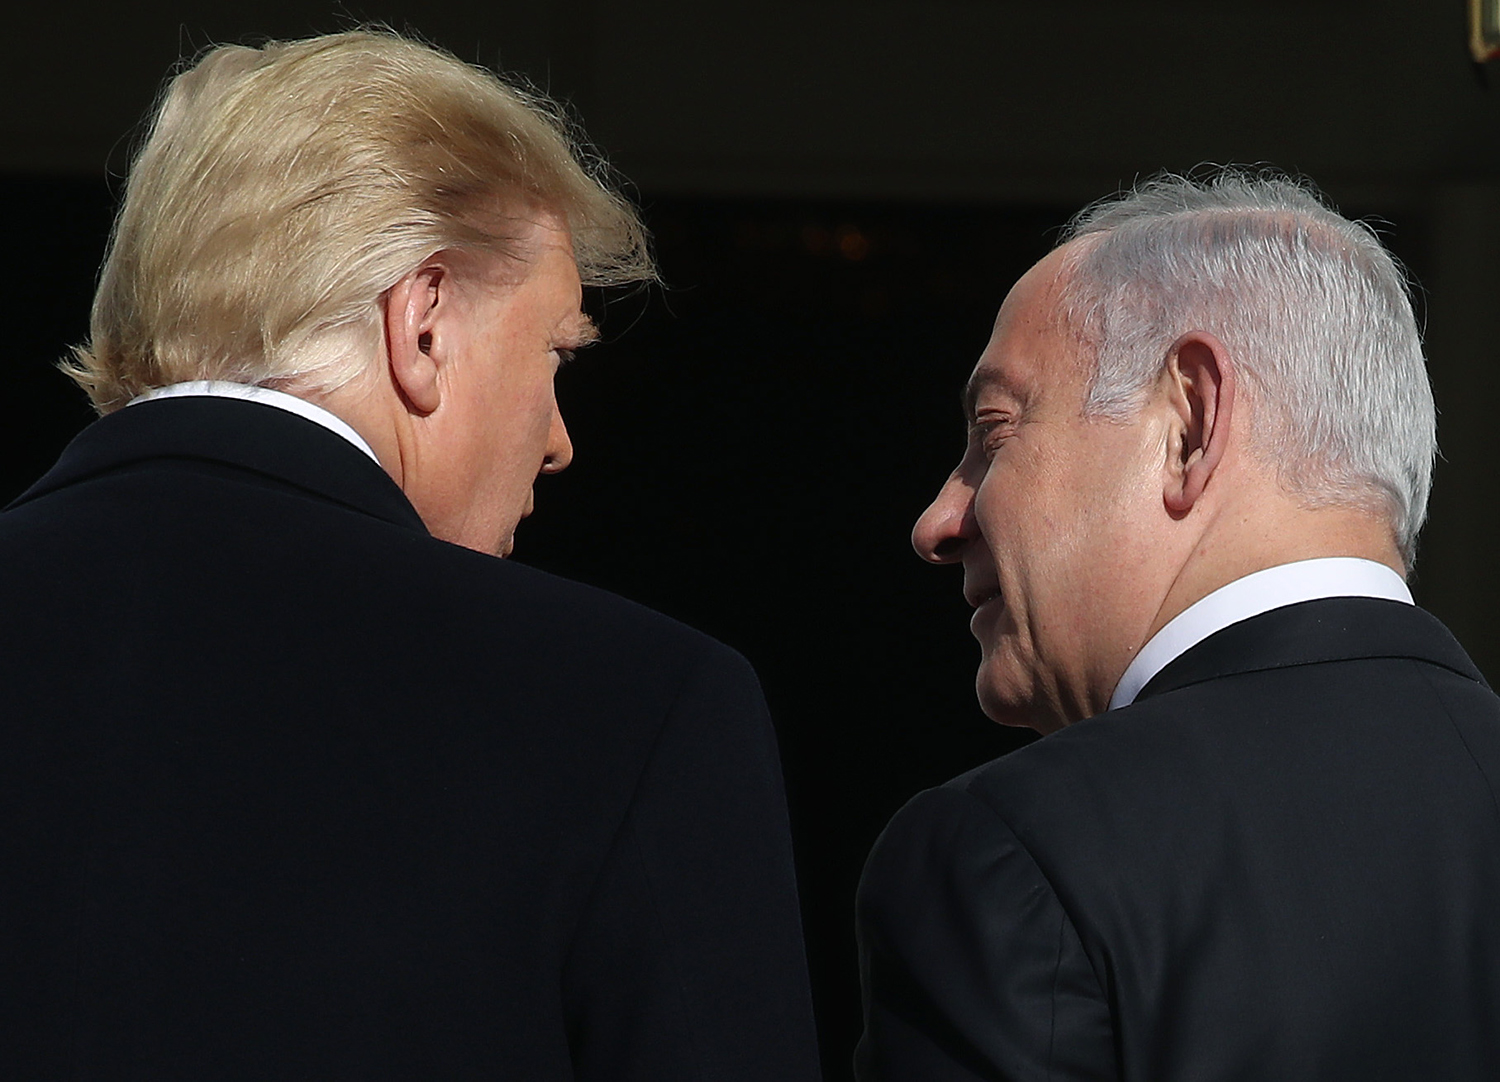 U.S. President Donald Trump (L) welcomes Israeli Prime Minister Benjamin Netanyahu at the White House on Jan. 27, 2020 in Washington, DC.